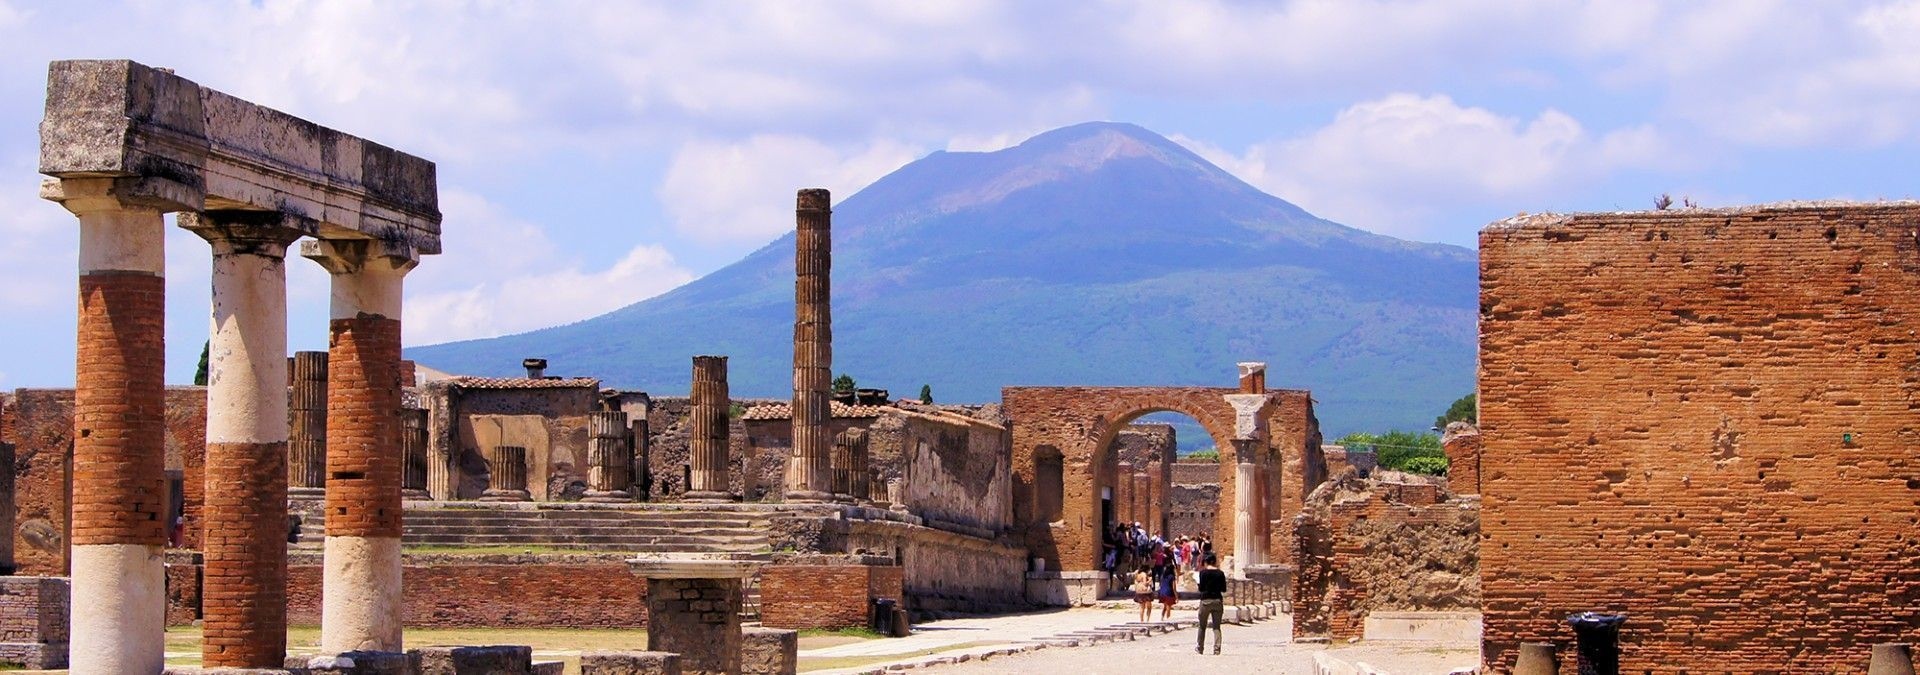 Image result for ruins of Pompeii at the foothills of Mount Vesuvius